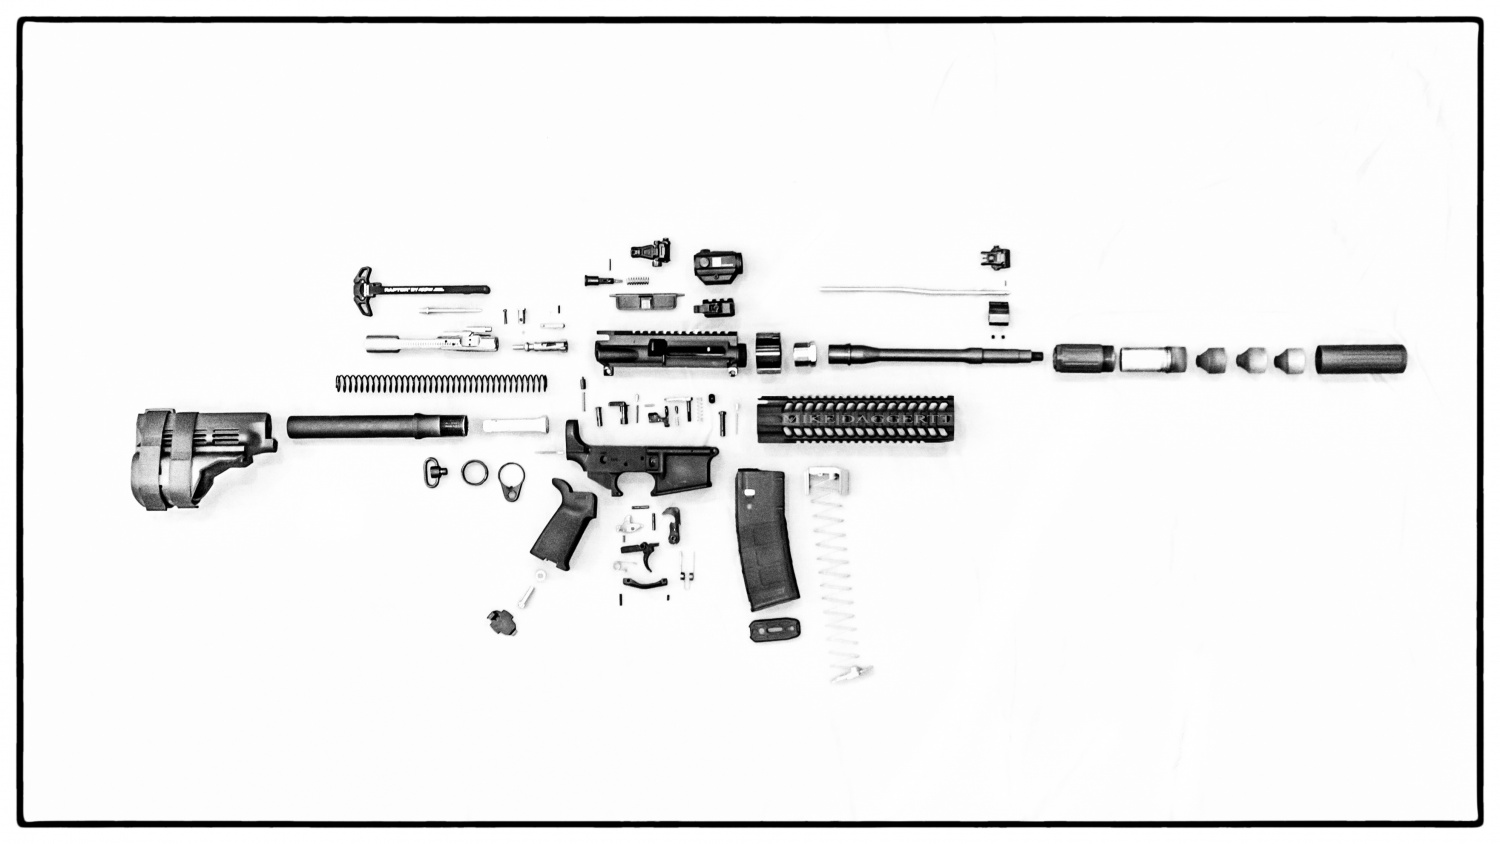 Ar 15 Parts Weights Database The Firearm Blog Diagram Besides Colt Series 80 1911 Assembly Diagrams On Pistol